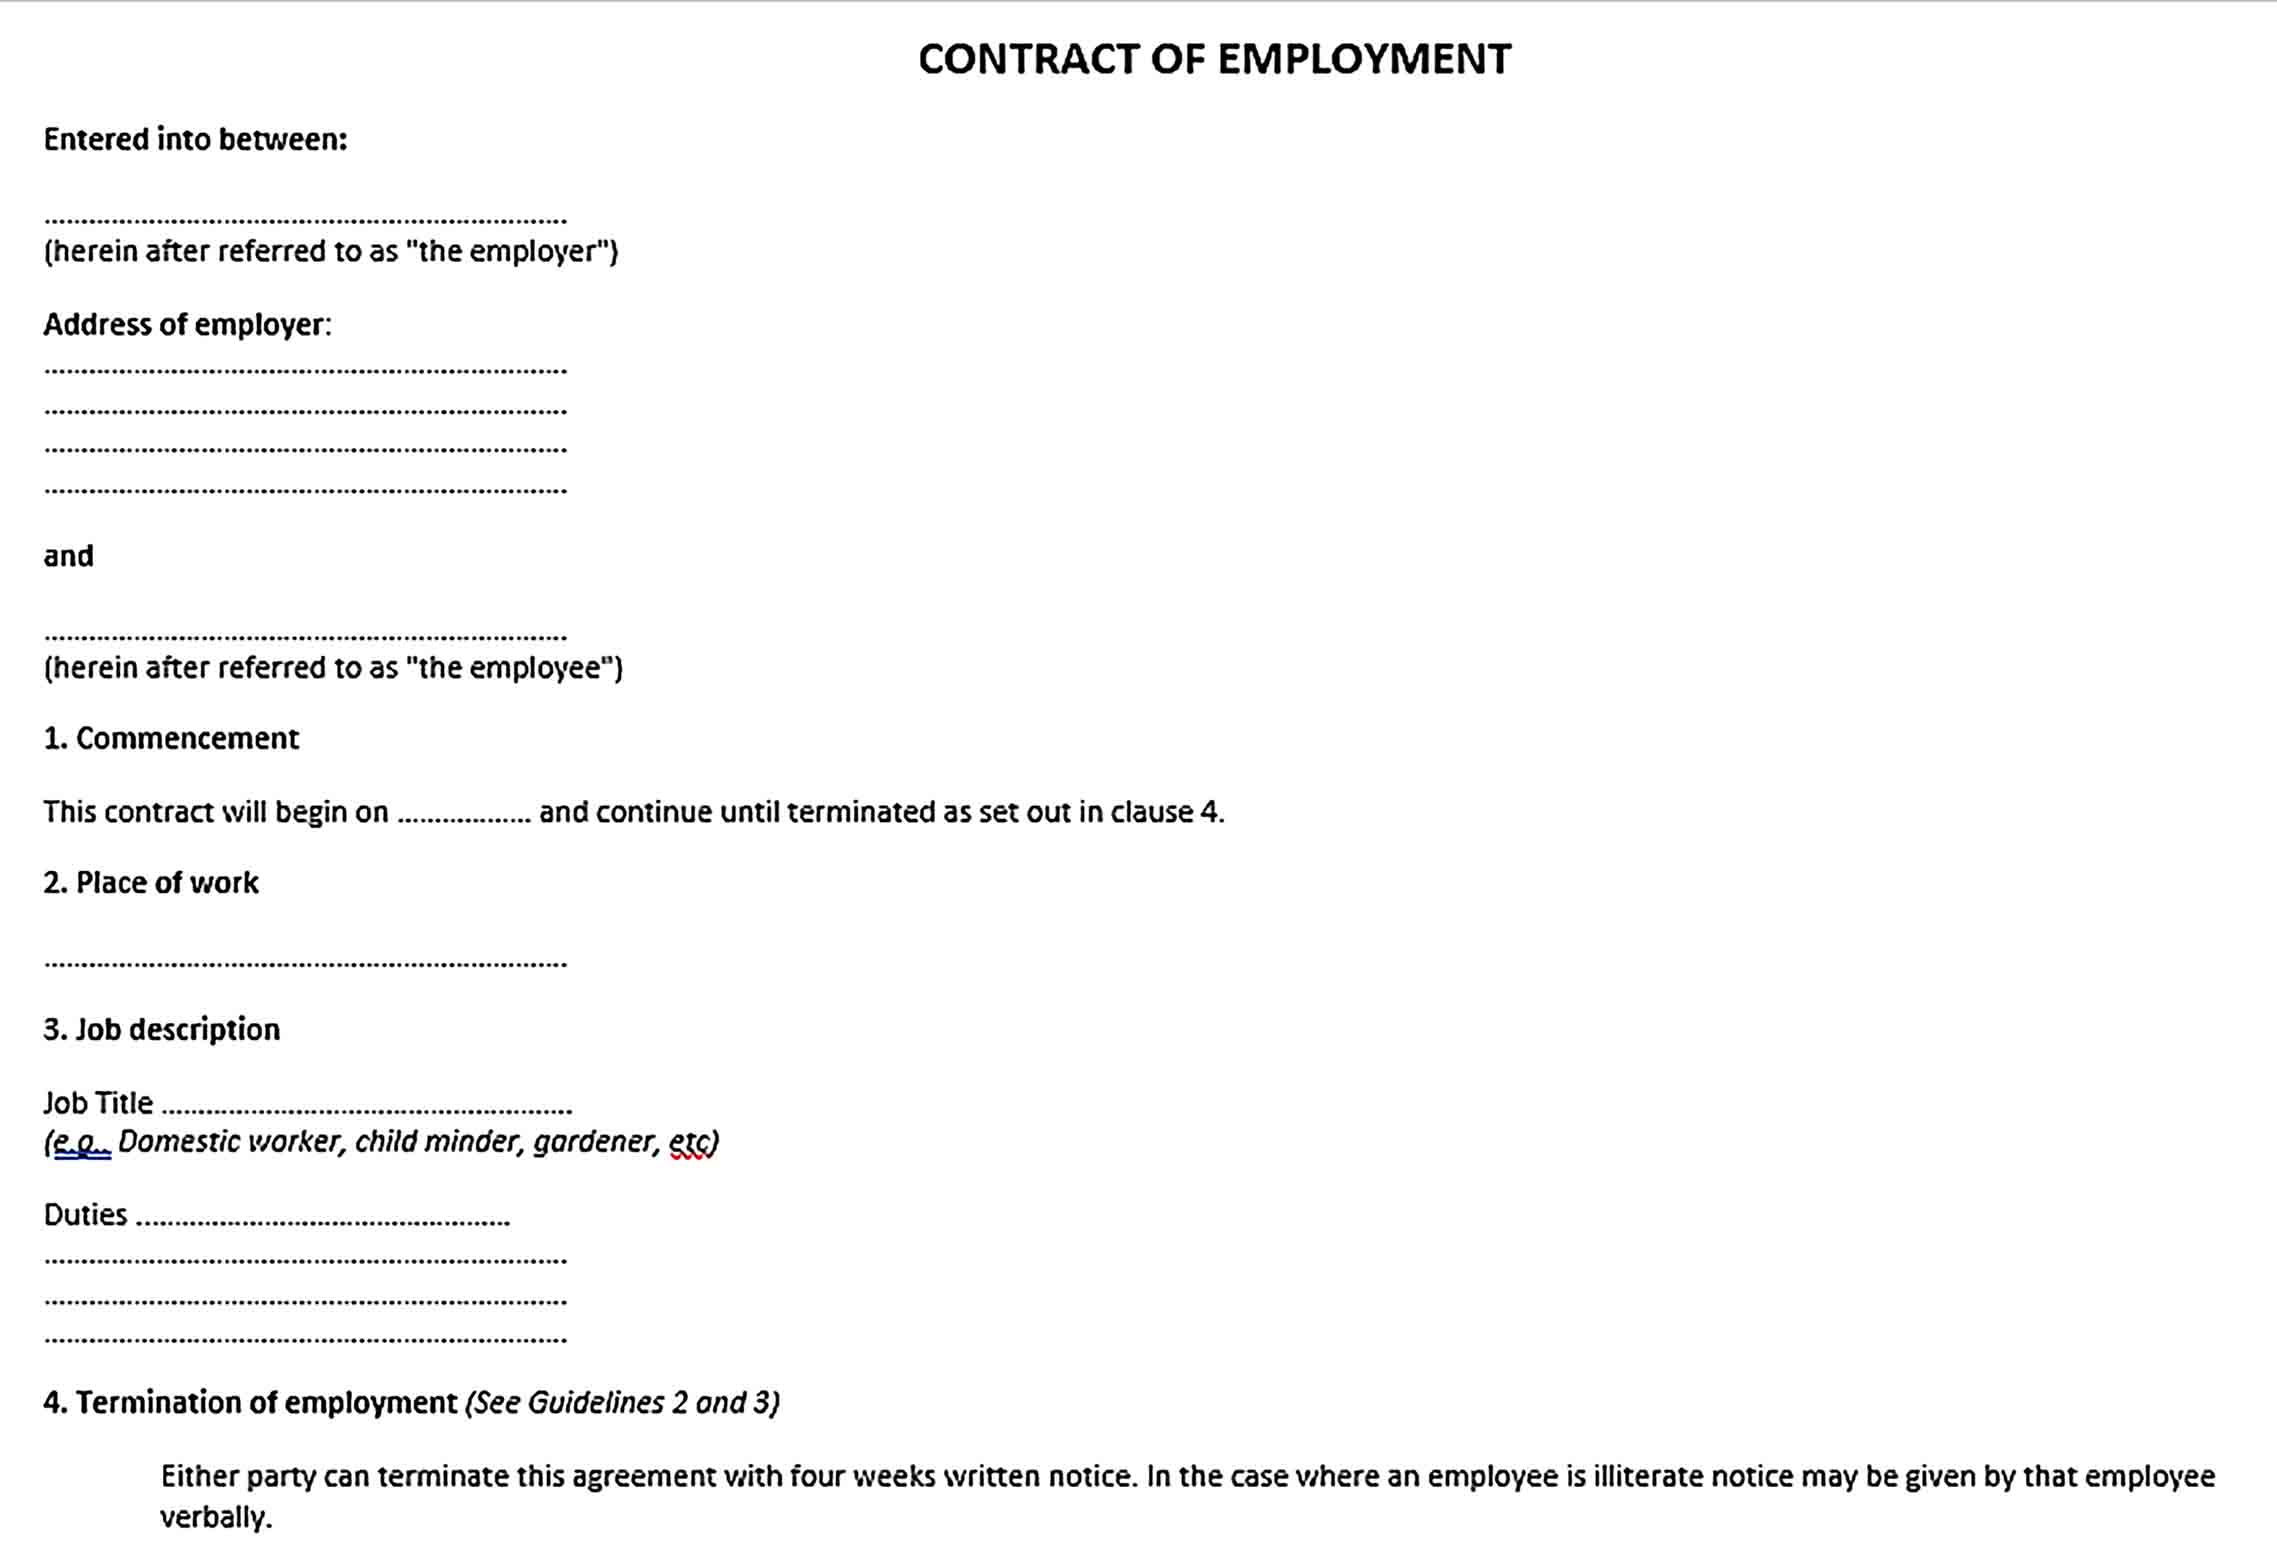 Sample Contract Of Employment Agreement Document